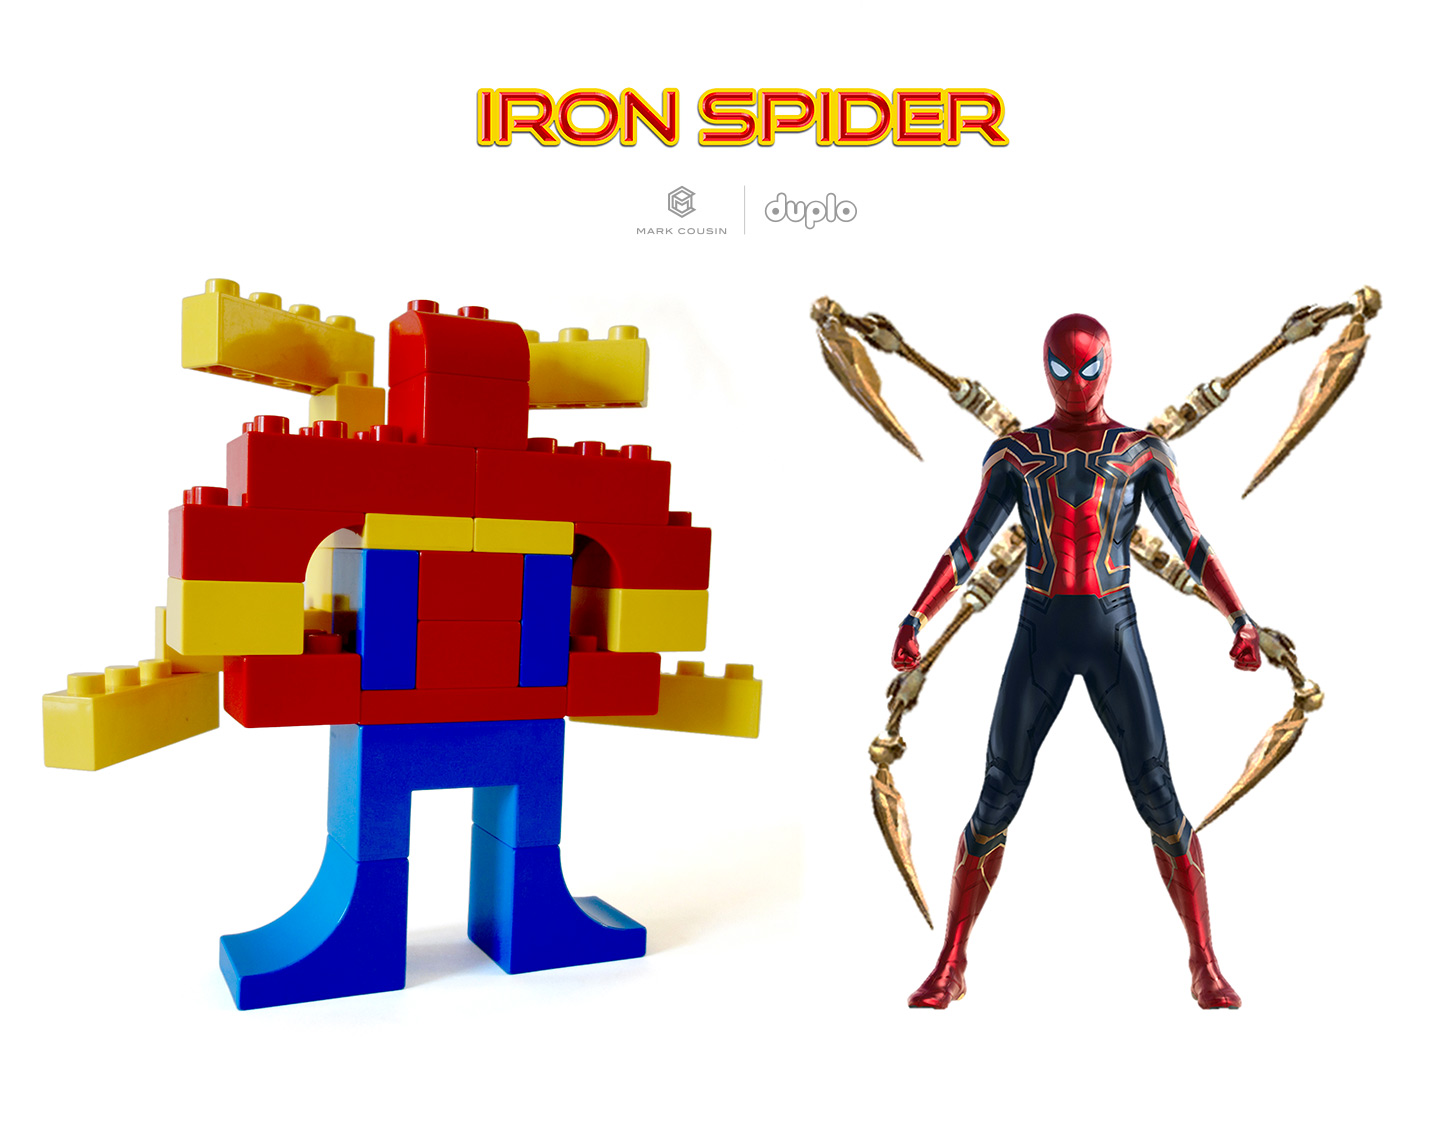 Iron_Spider_MC_Duplo